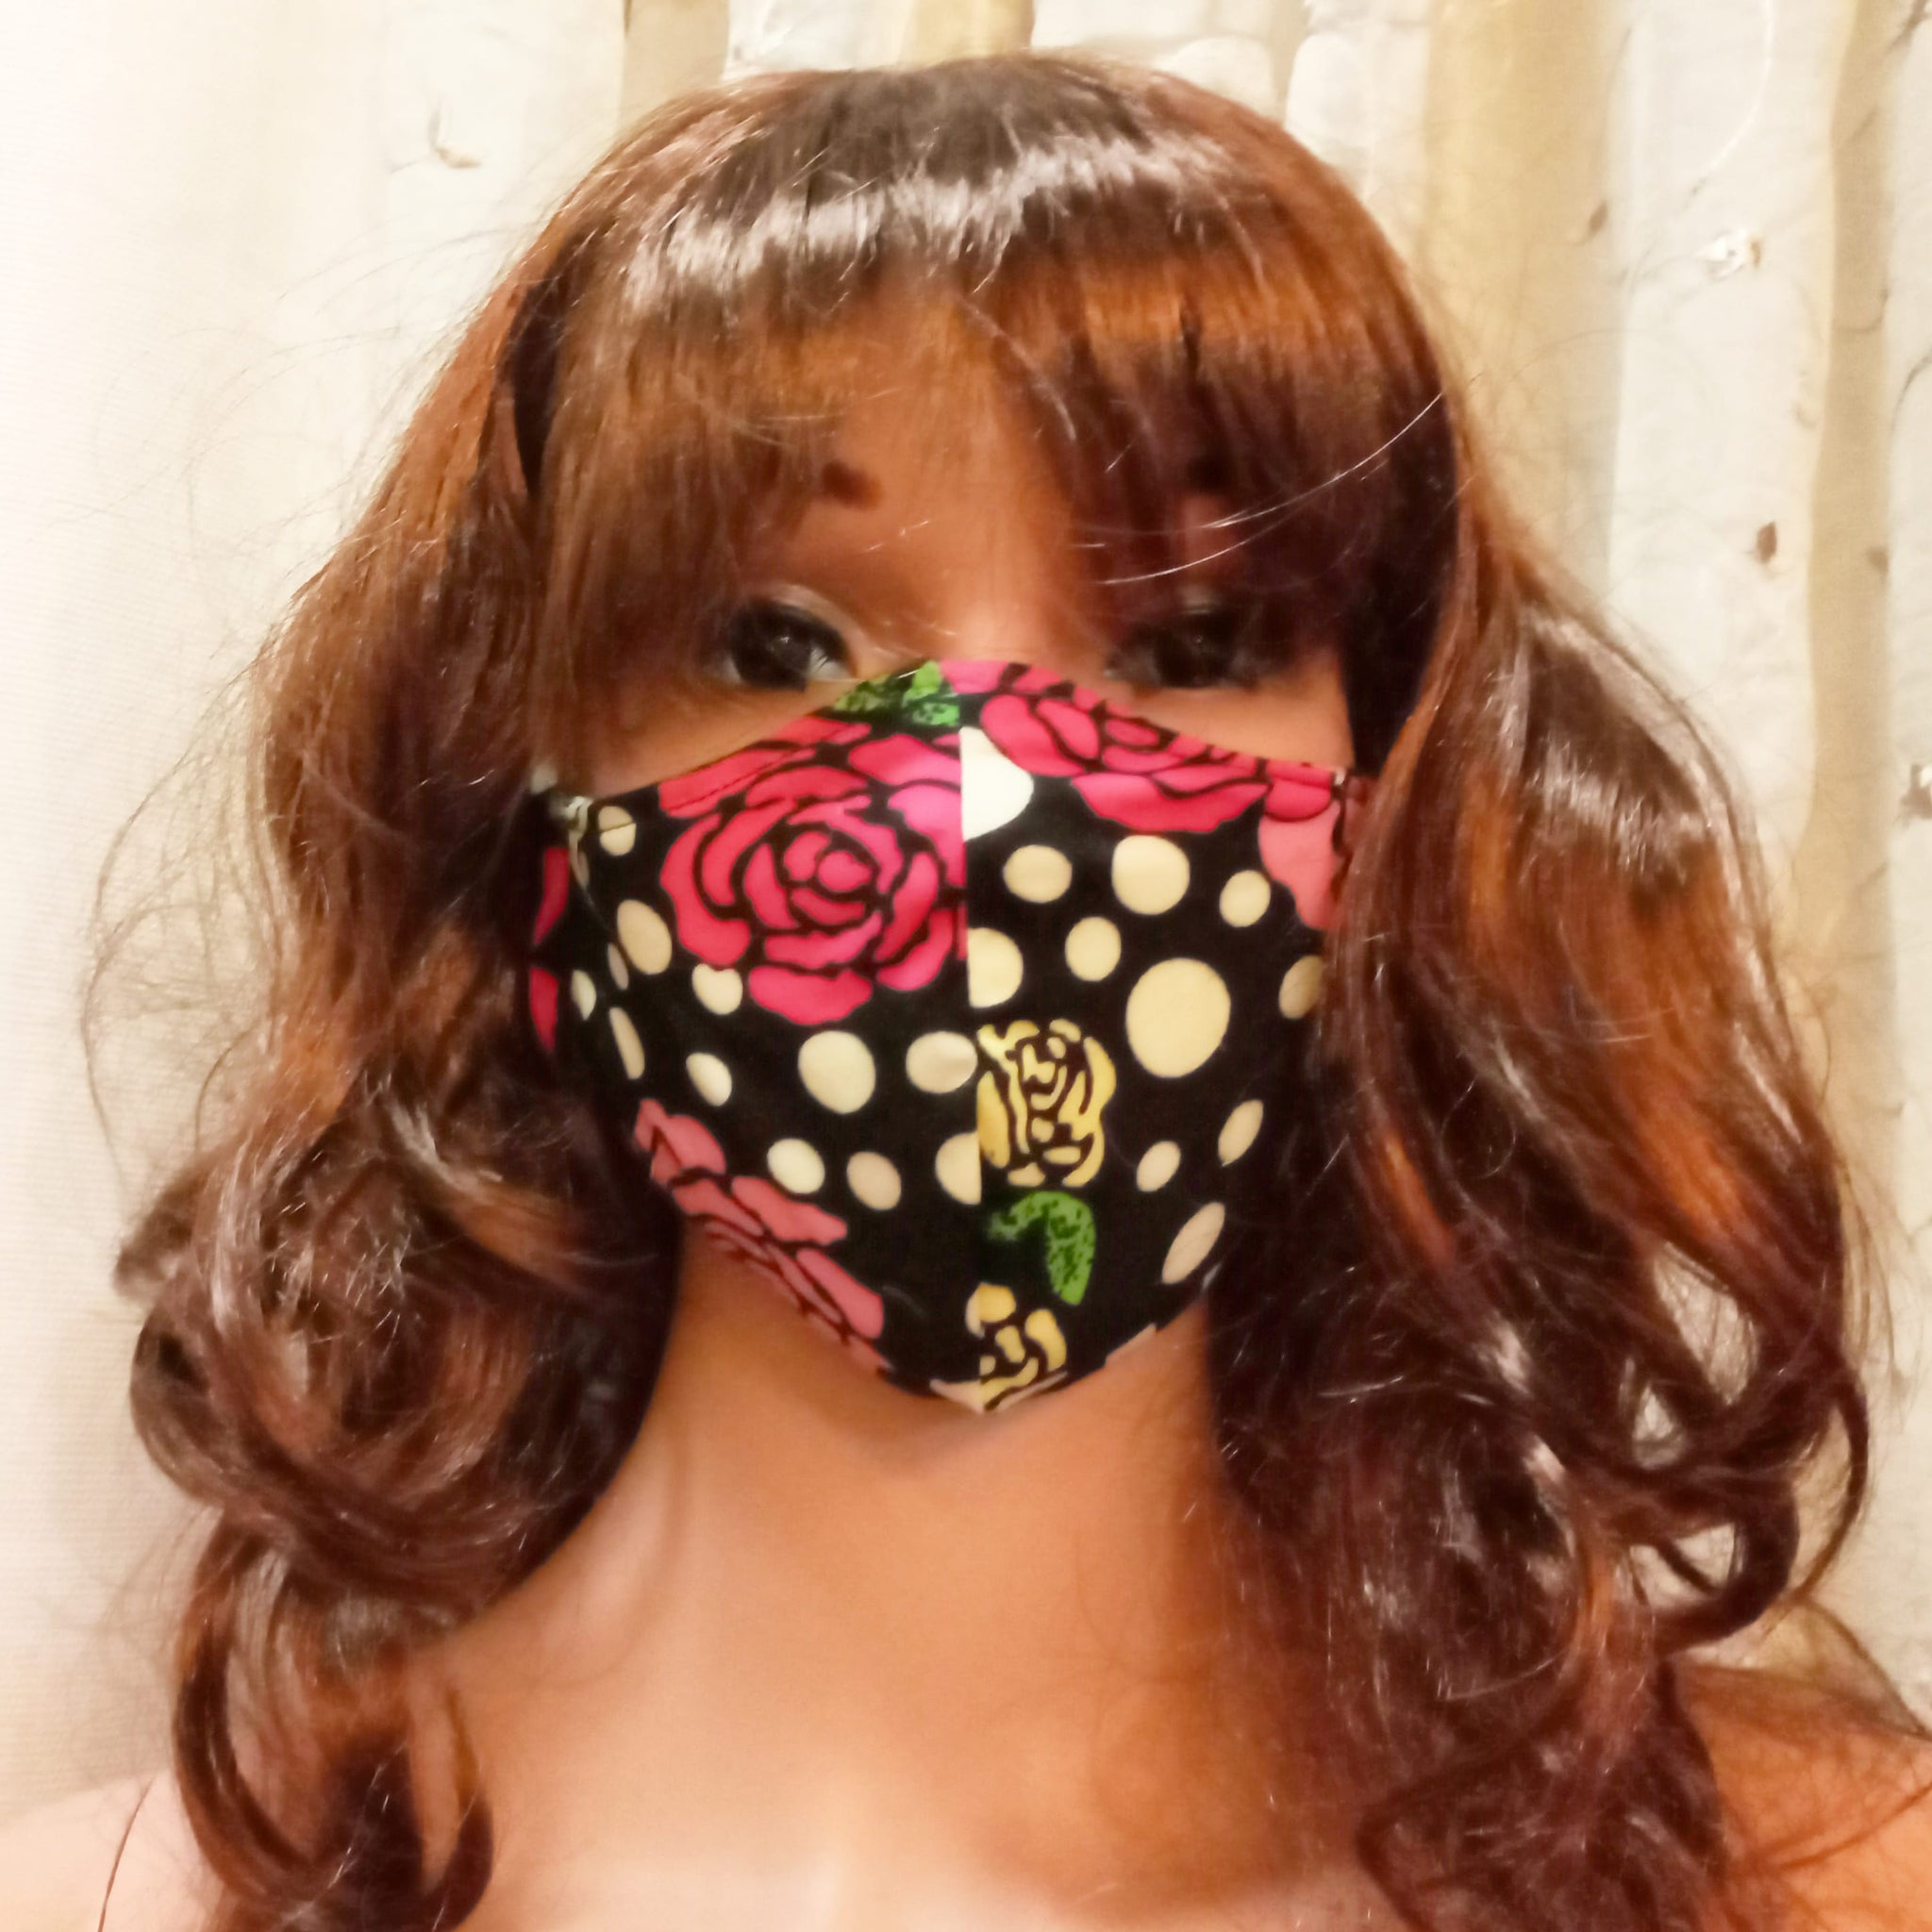 Fash Mask LYNNA SET Cotton Floral